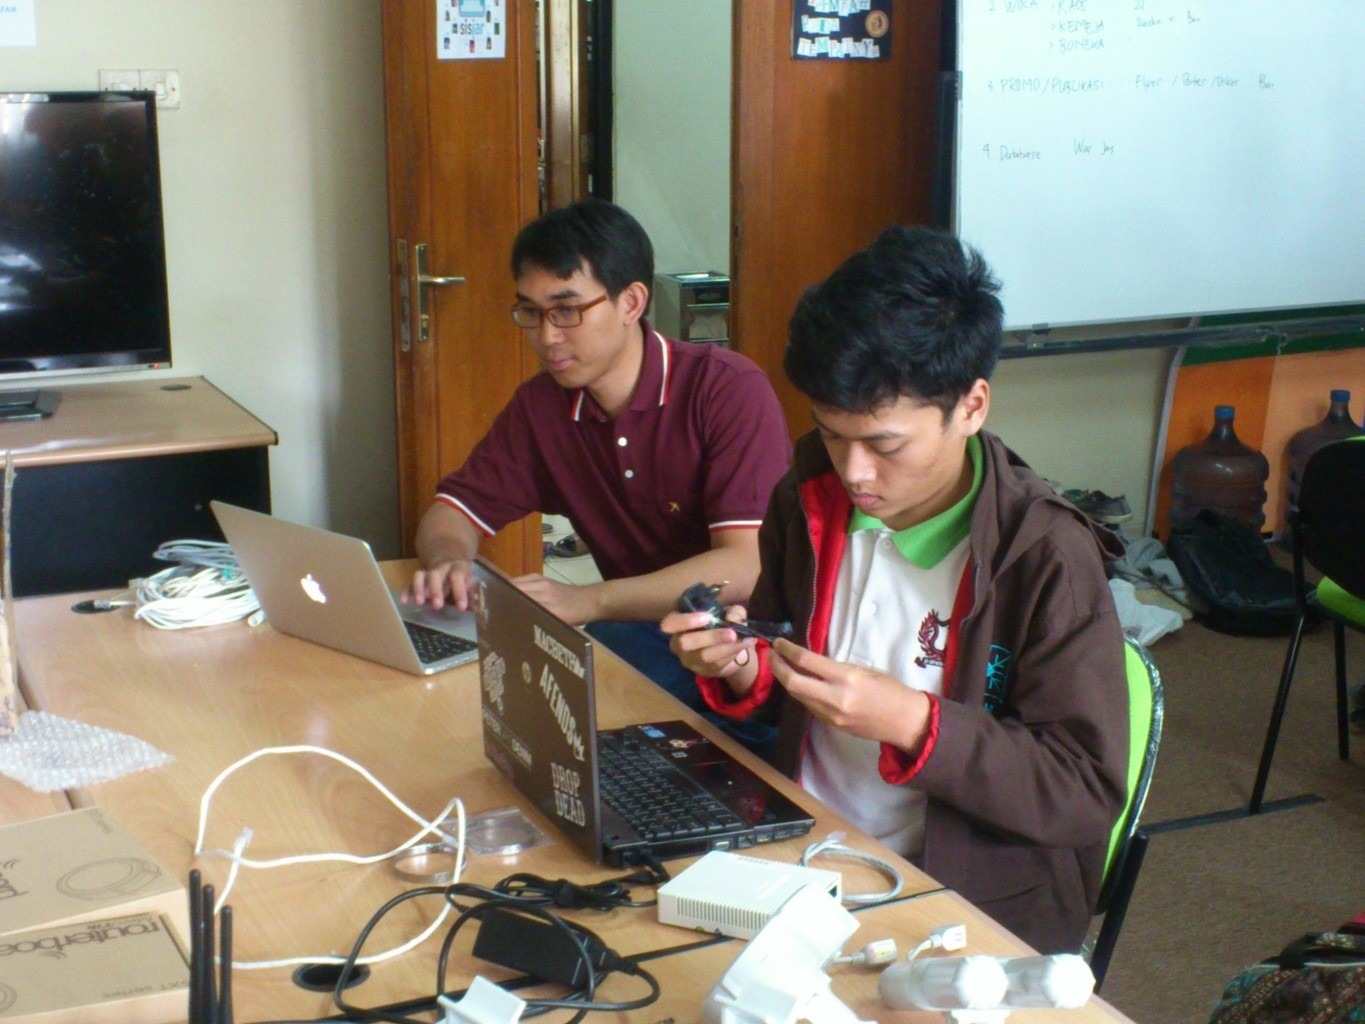 August 2013, setup mikrotik lab at Telkom University